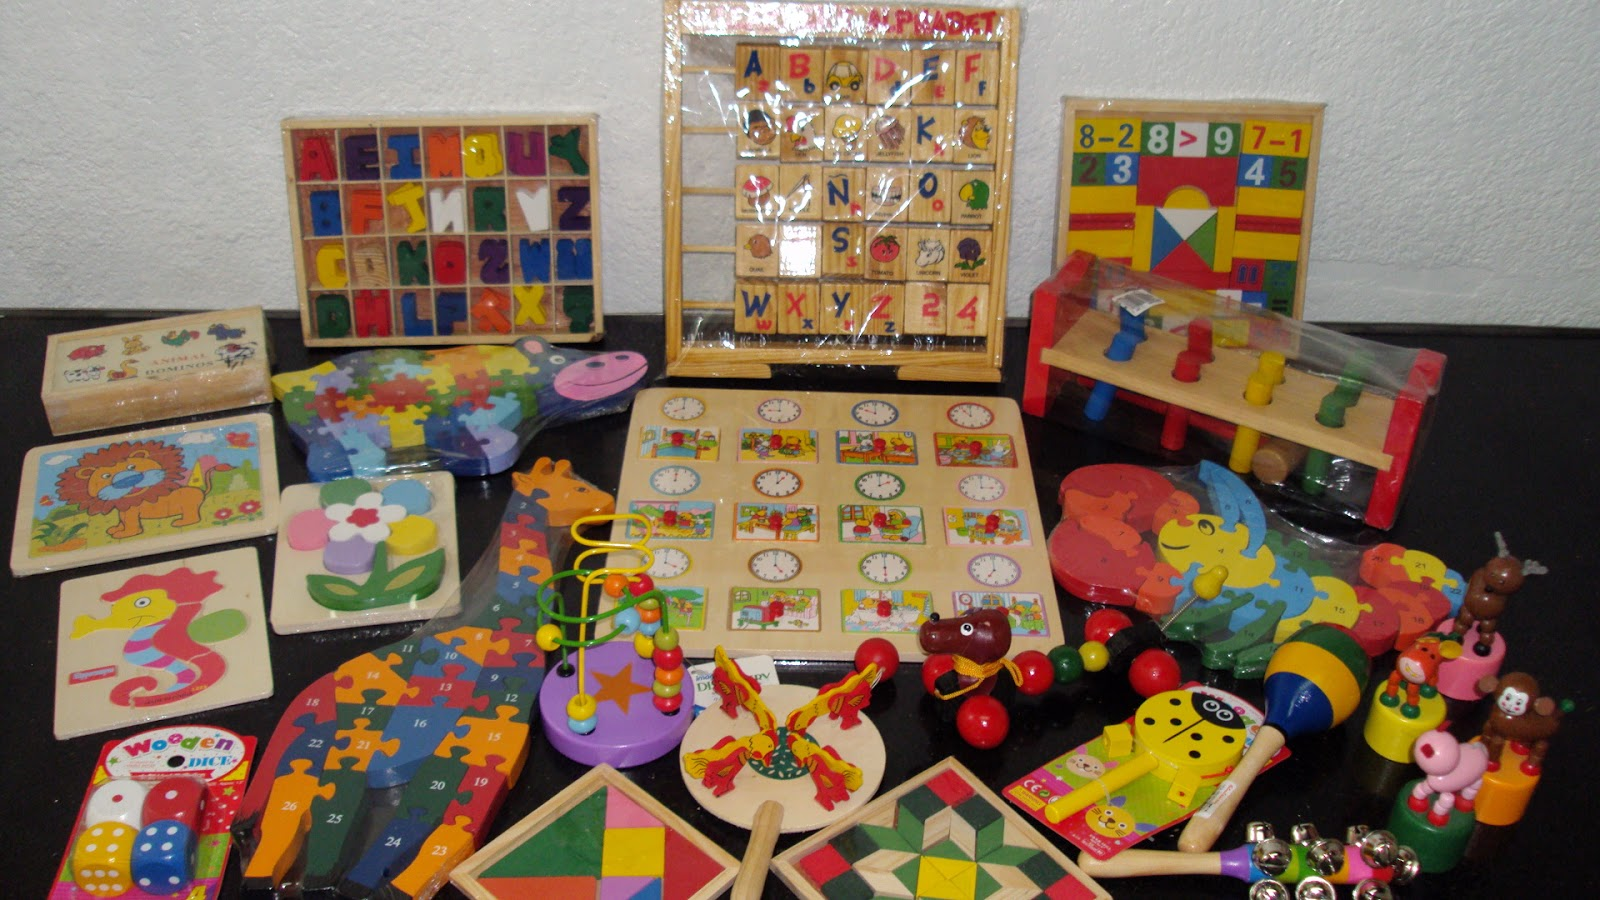 Toys For Groups : Ecowaste coalition